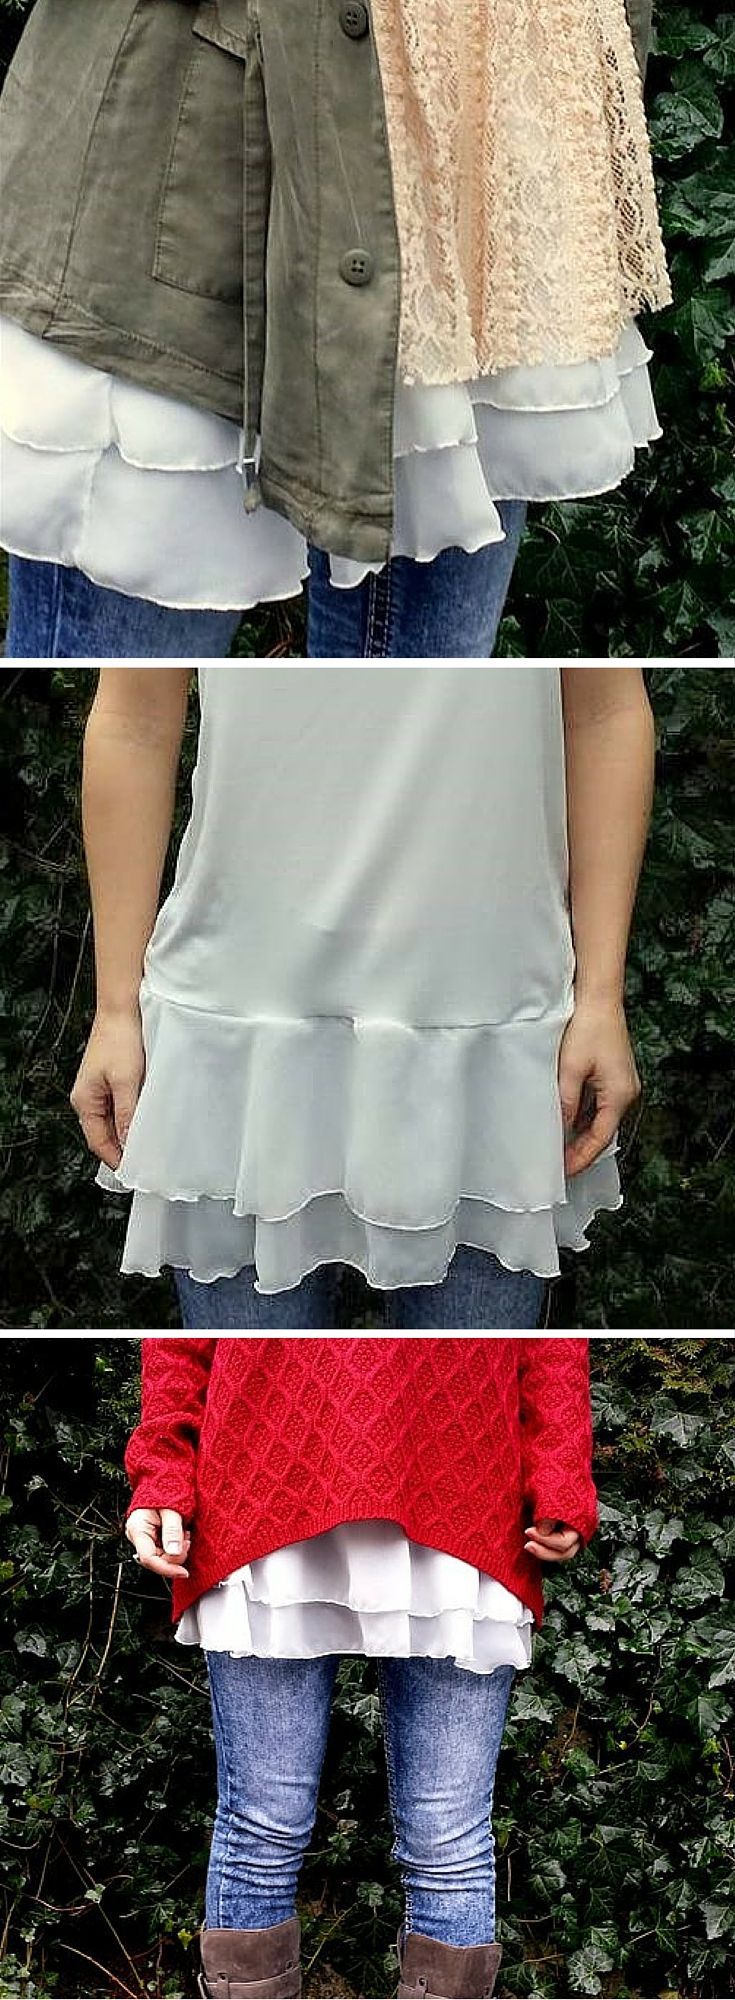 Camisole extender with chiffon. Could make this from an old tank top or camisole with any kind of frilly fabric at the bottom.